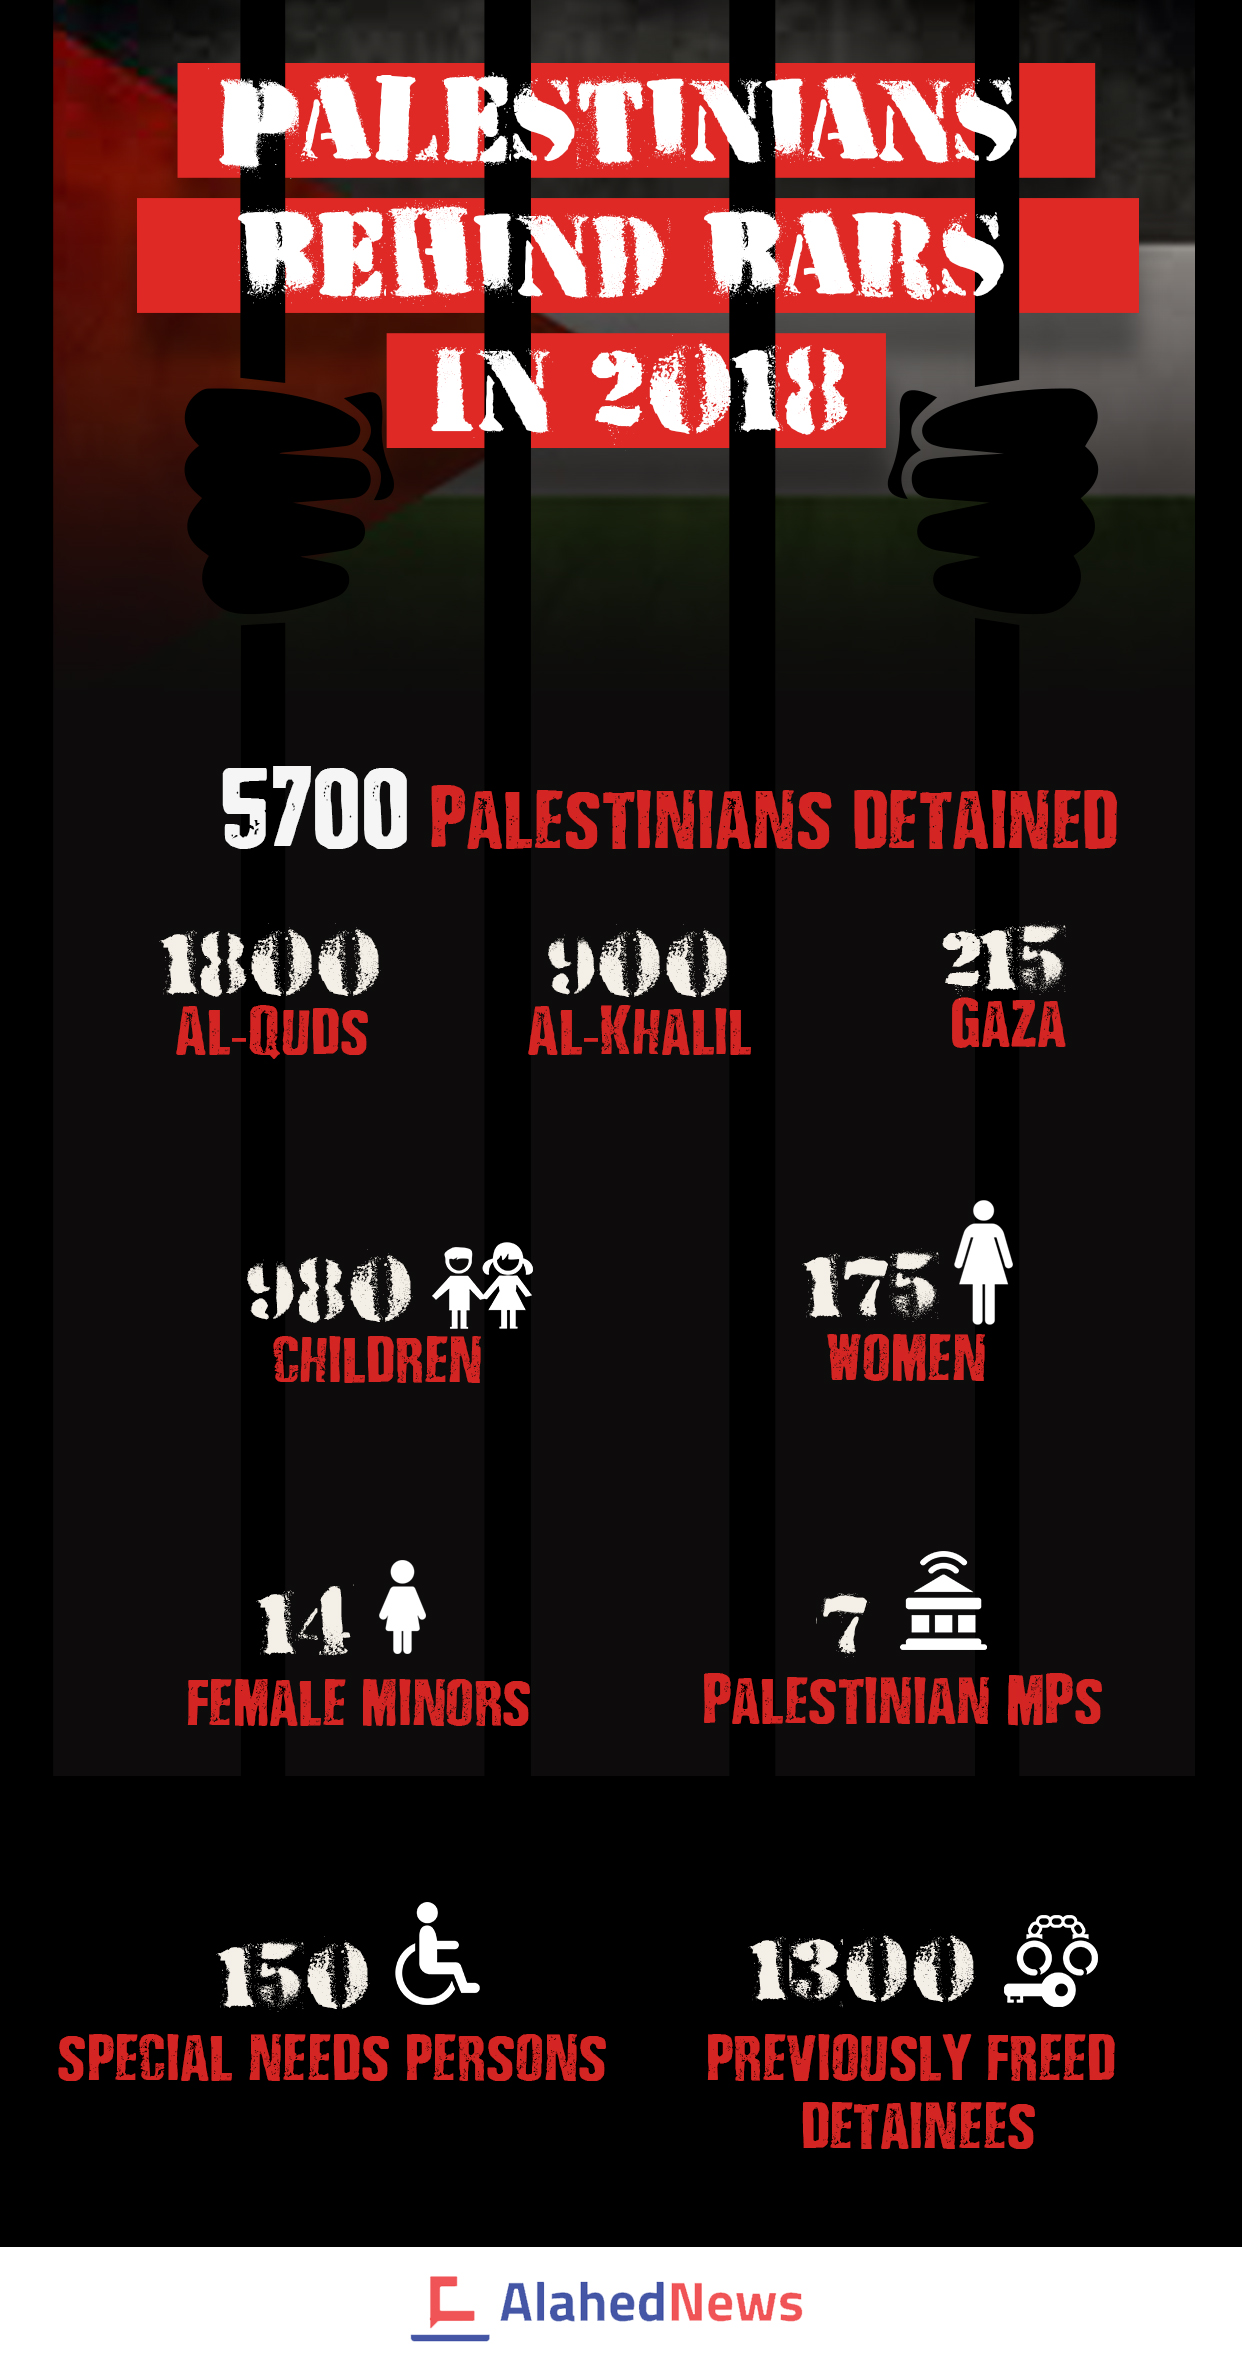 In Numbers: Palestinians Behind Bars in 2018